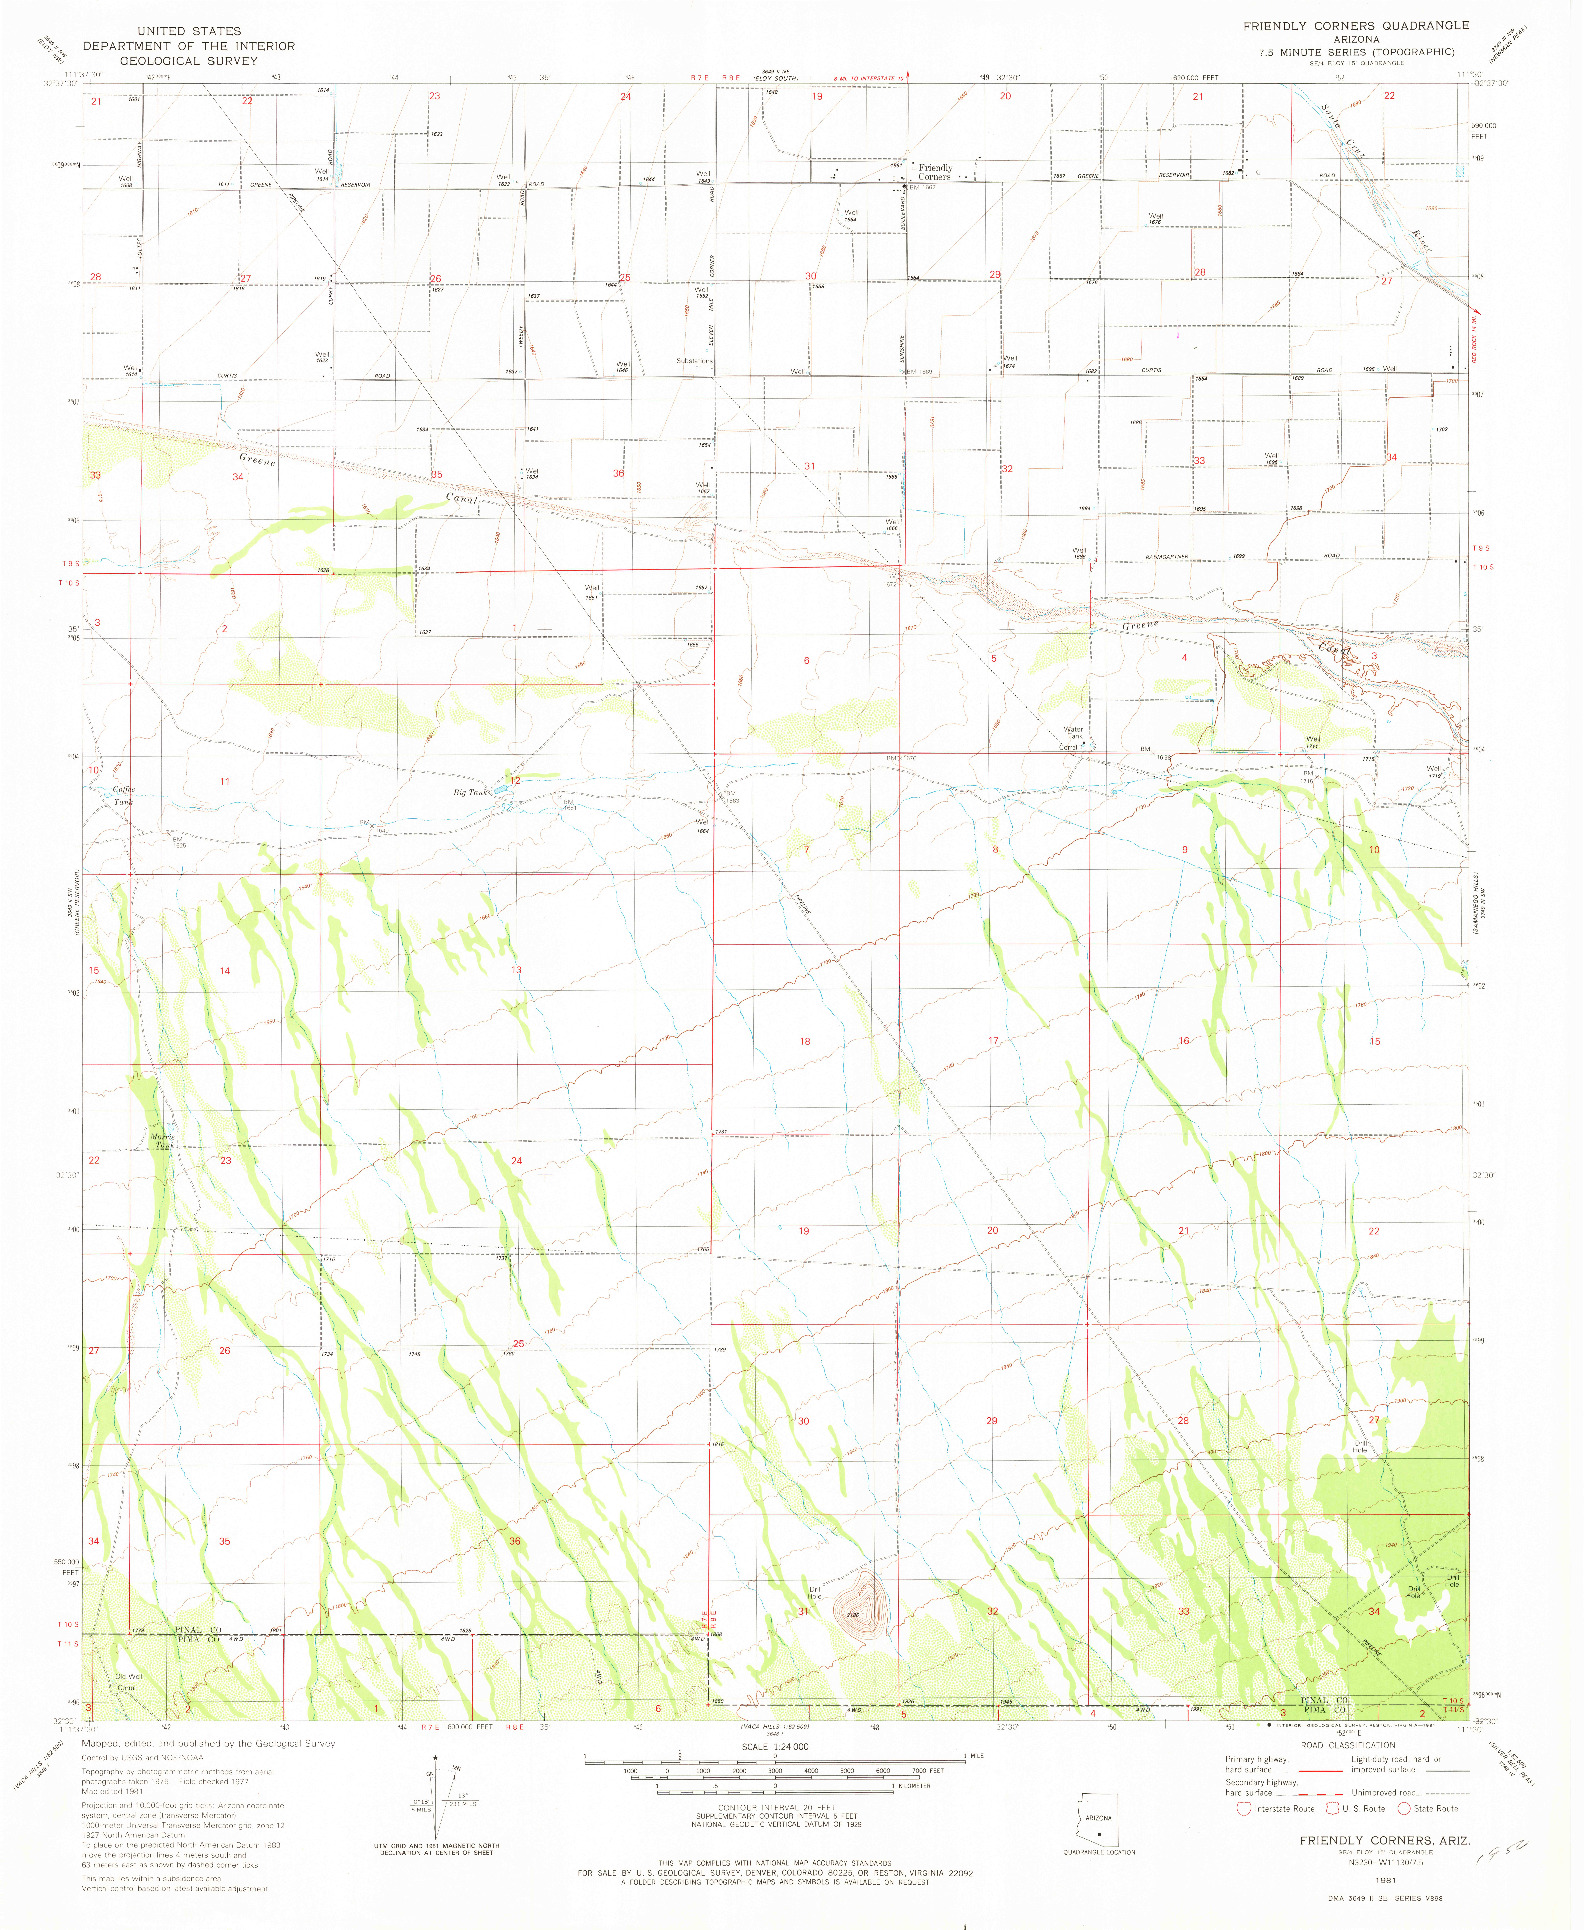 USGS 1:24000-SCALE QUADRANGLE FOR FRIENDLY CORNERS, AZ 1981